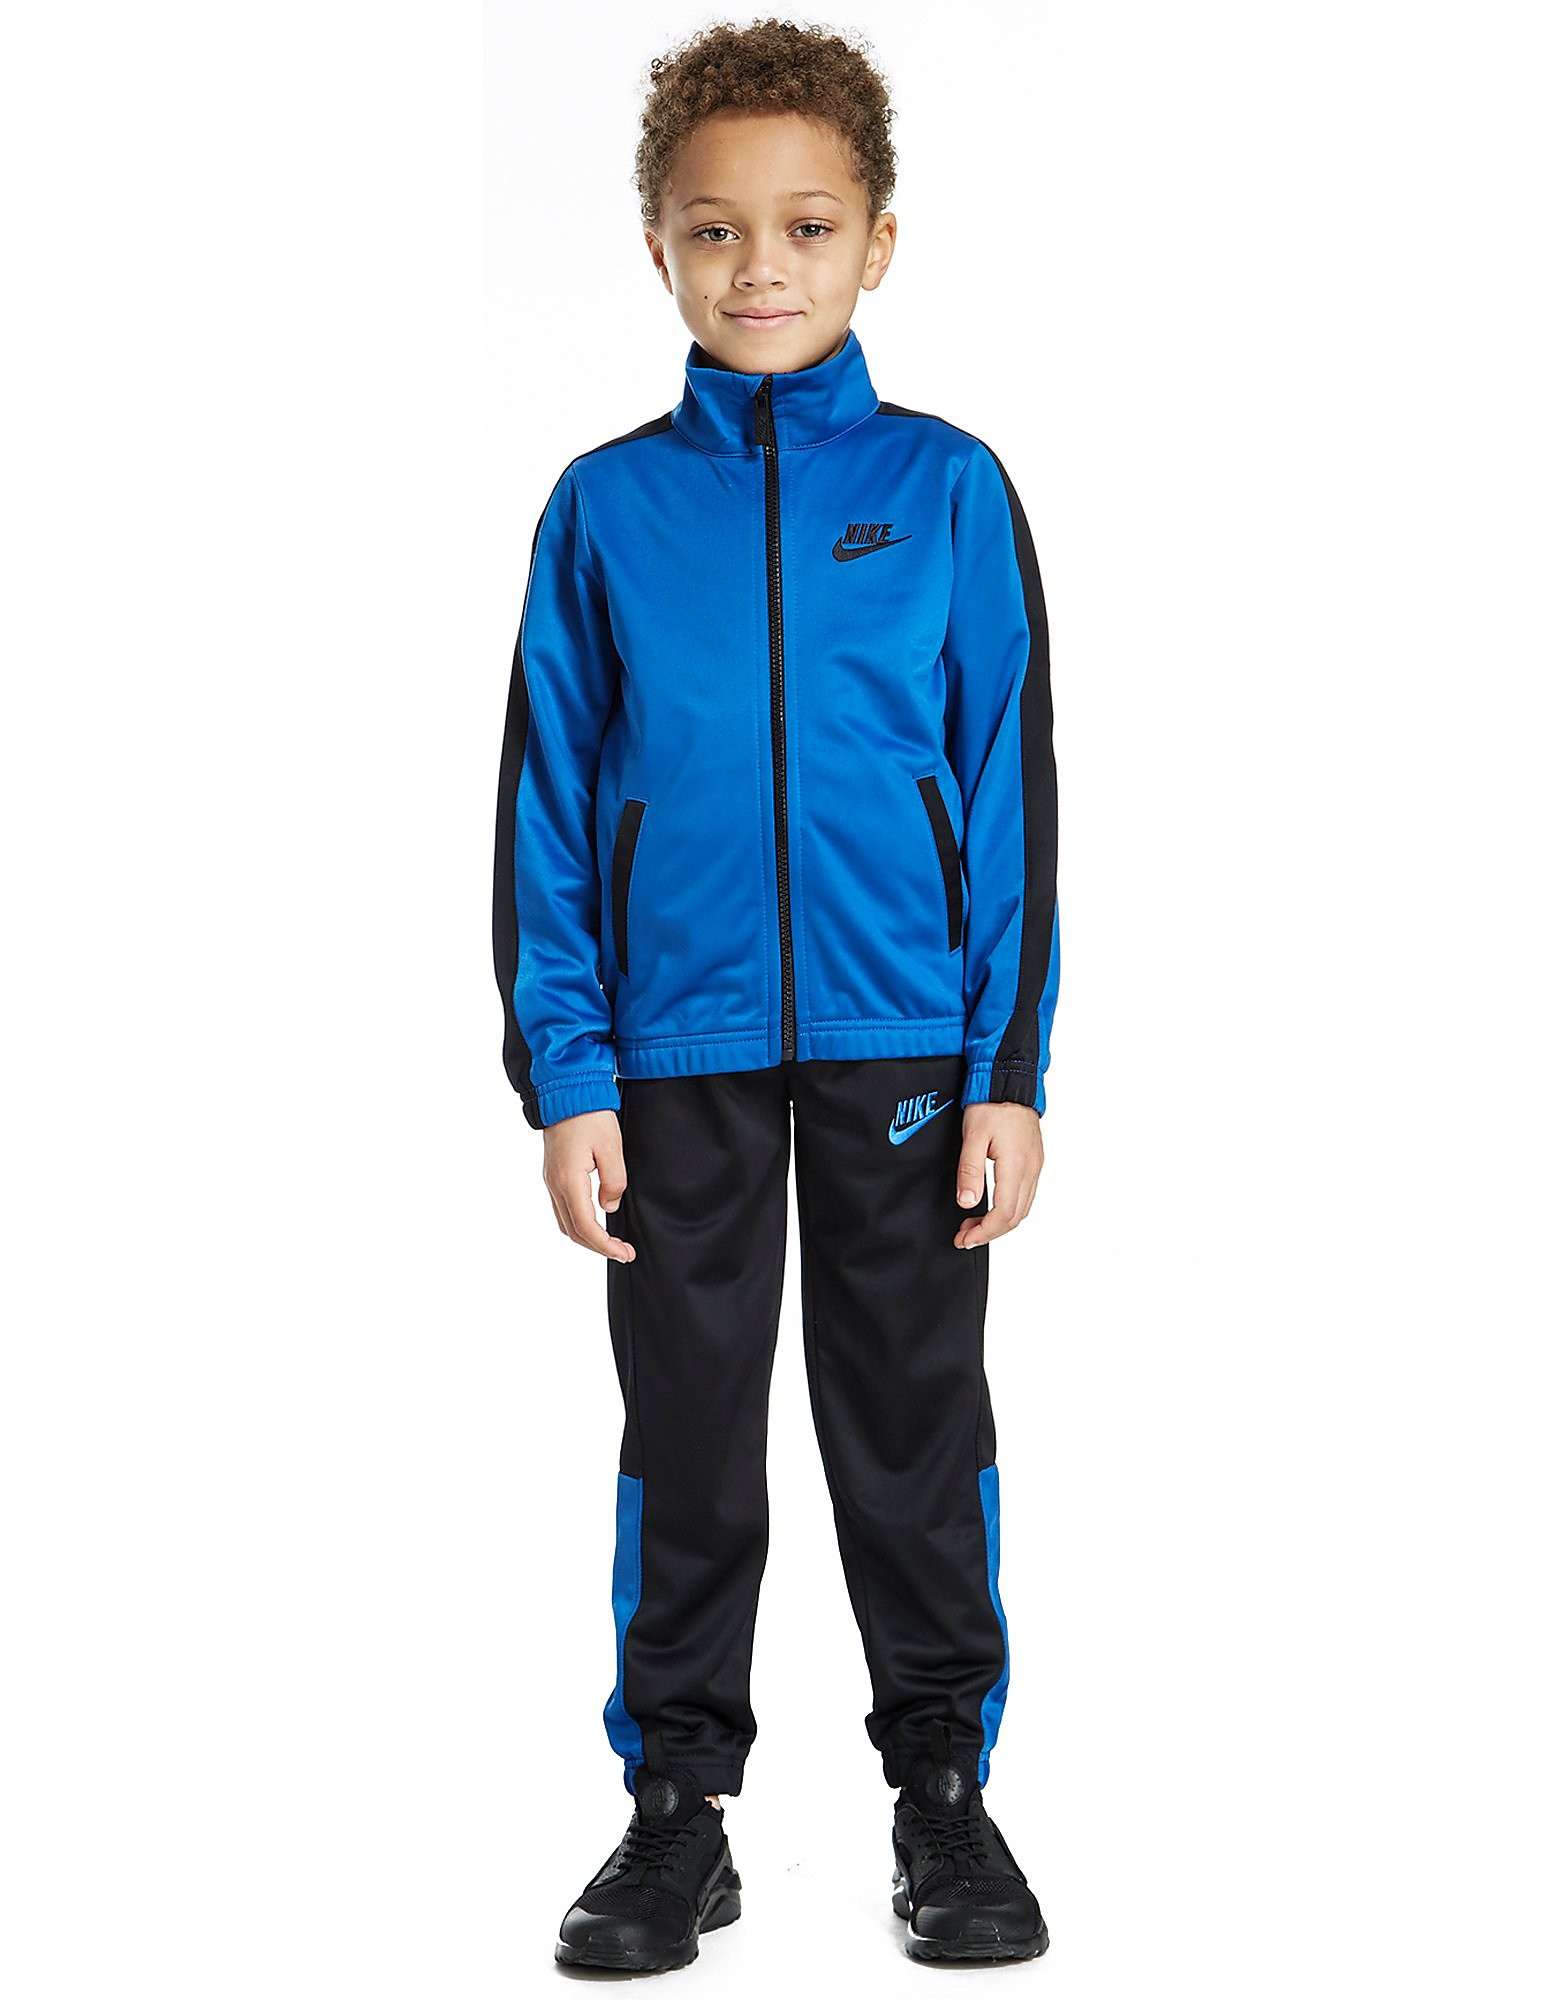 Nike Futura Suit Children